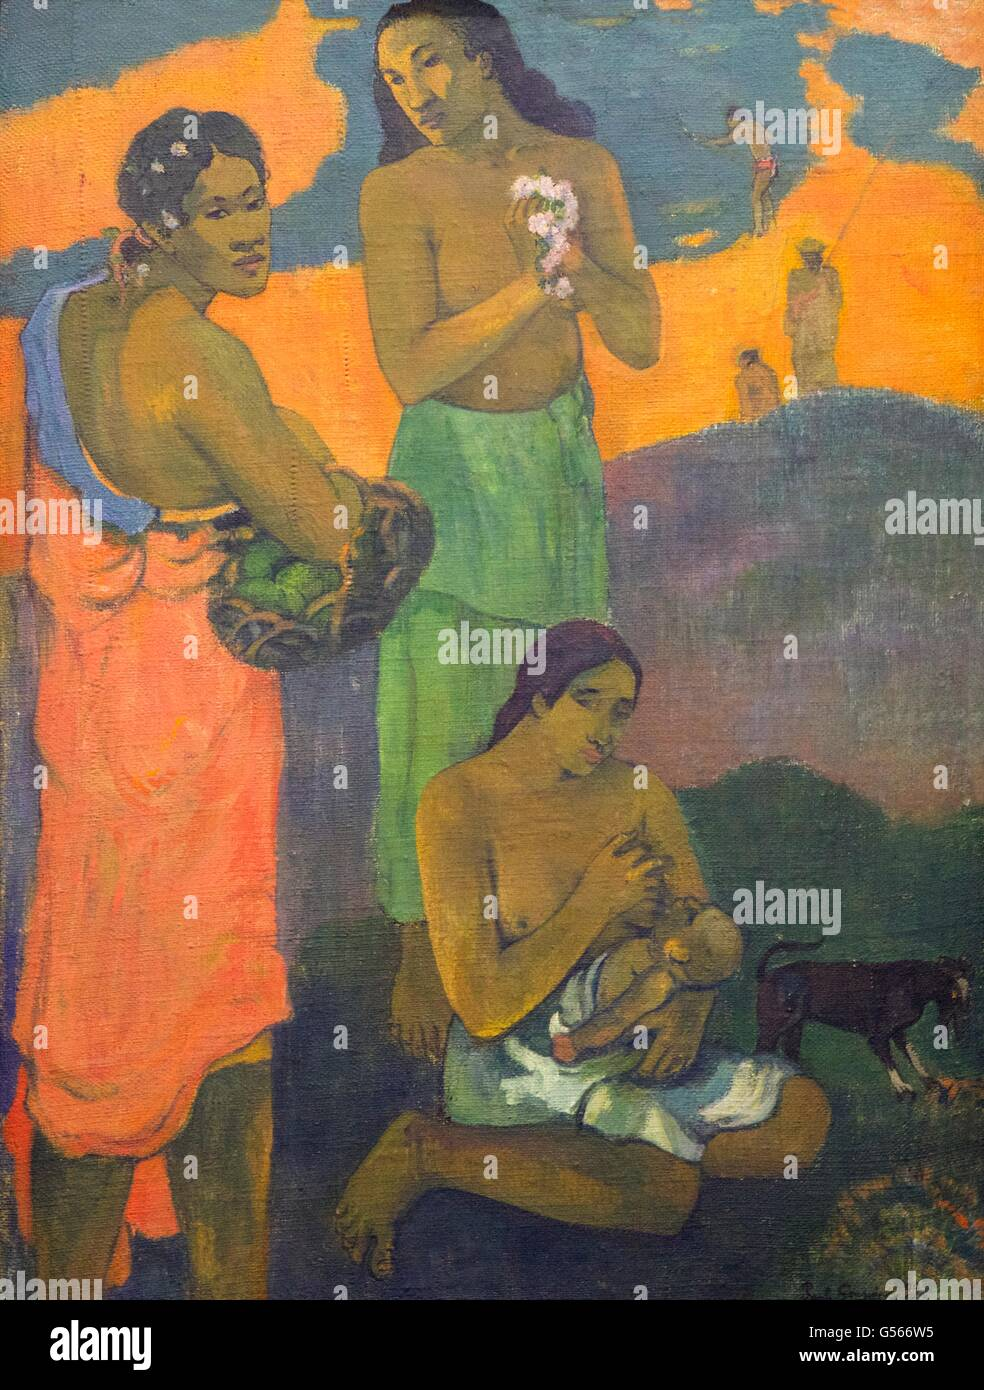 Maternity, or Three Women on the Seashore, by Paul Gauguin, 1899, State Hermitage Museum, Saint Petersburg, Russia - Stock Image